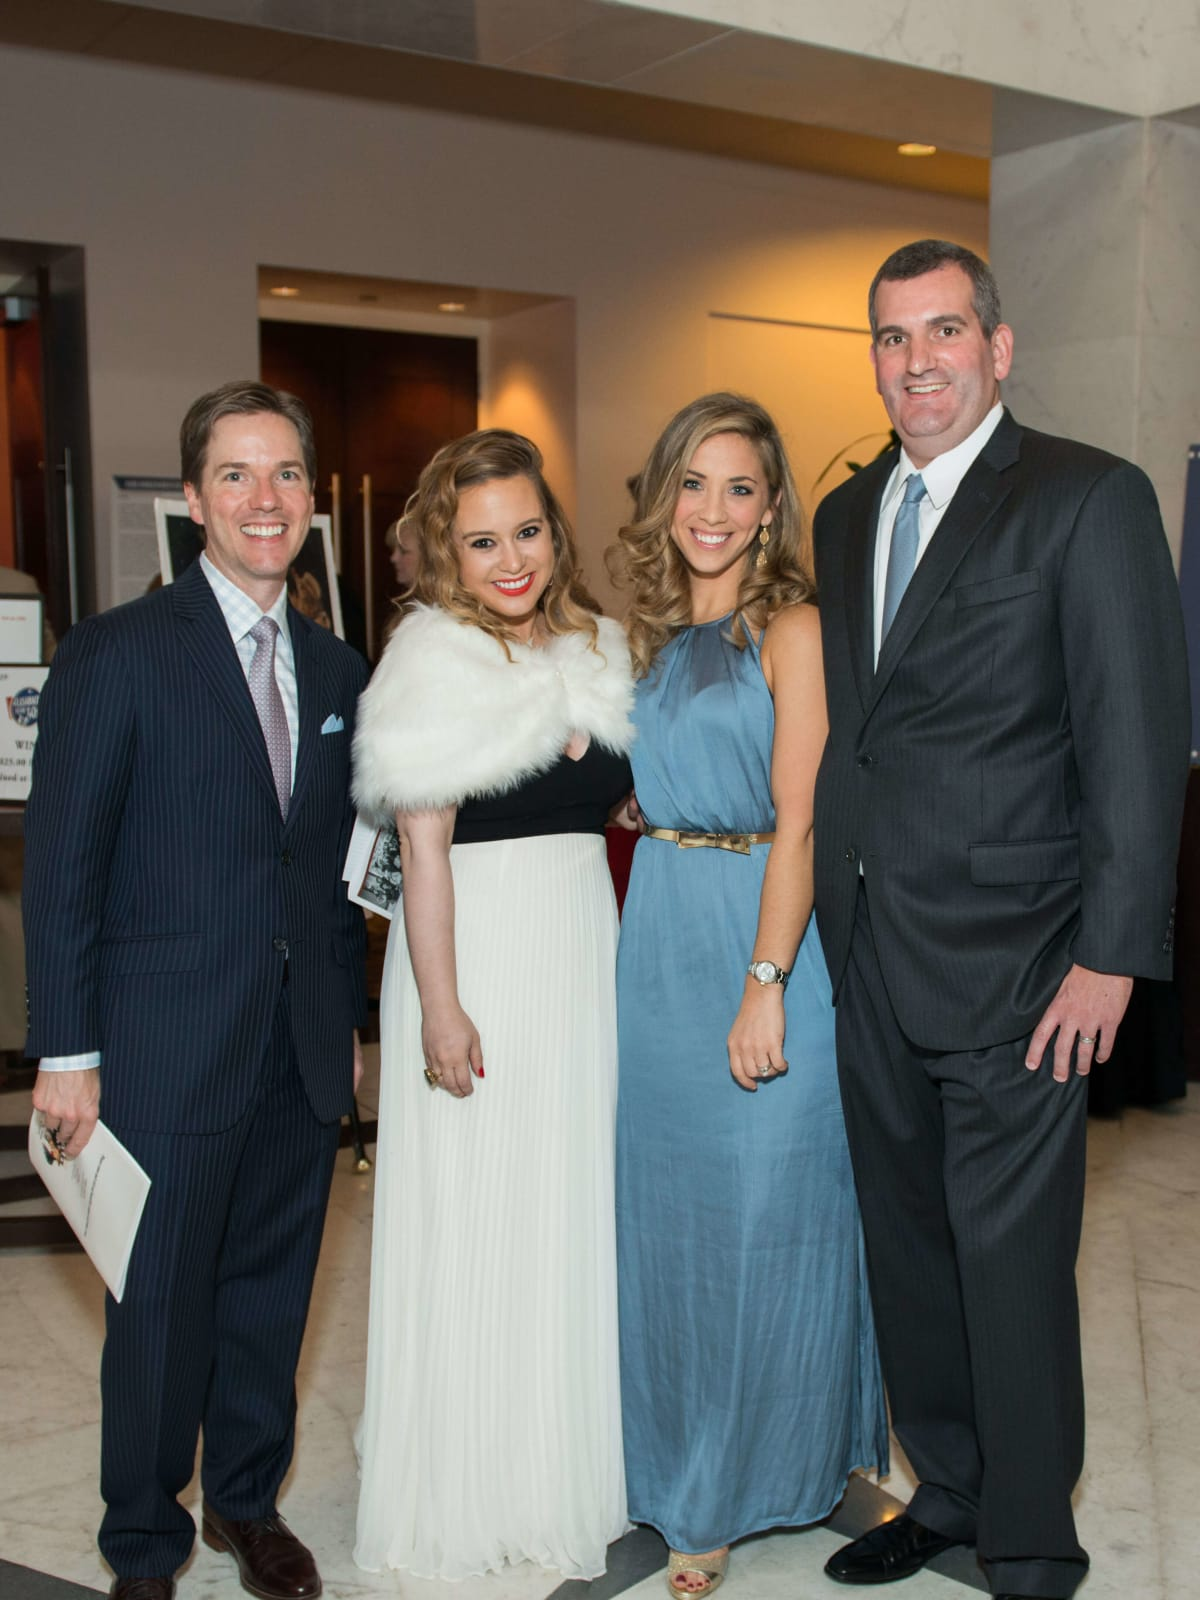 David Kennedy, Megan Blaisdell, Bethany Hibbetts, Matthew Hibbetts at Mission of Yahweh gala